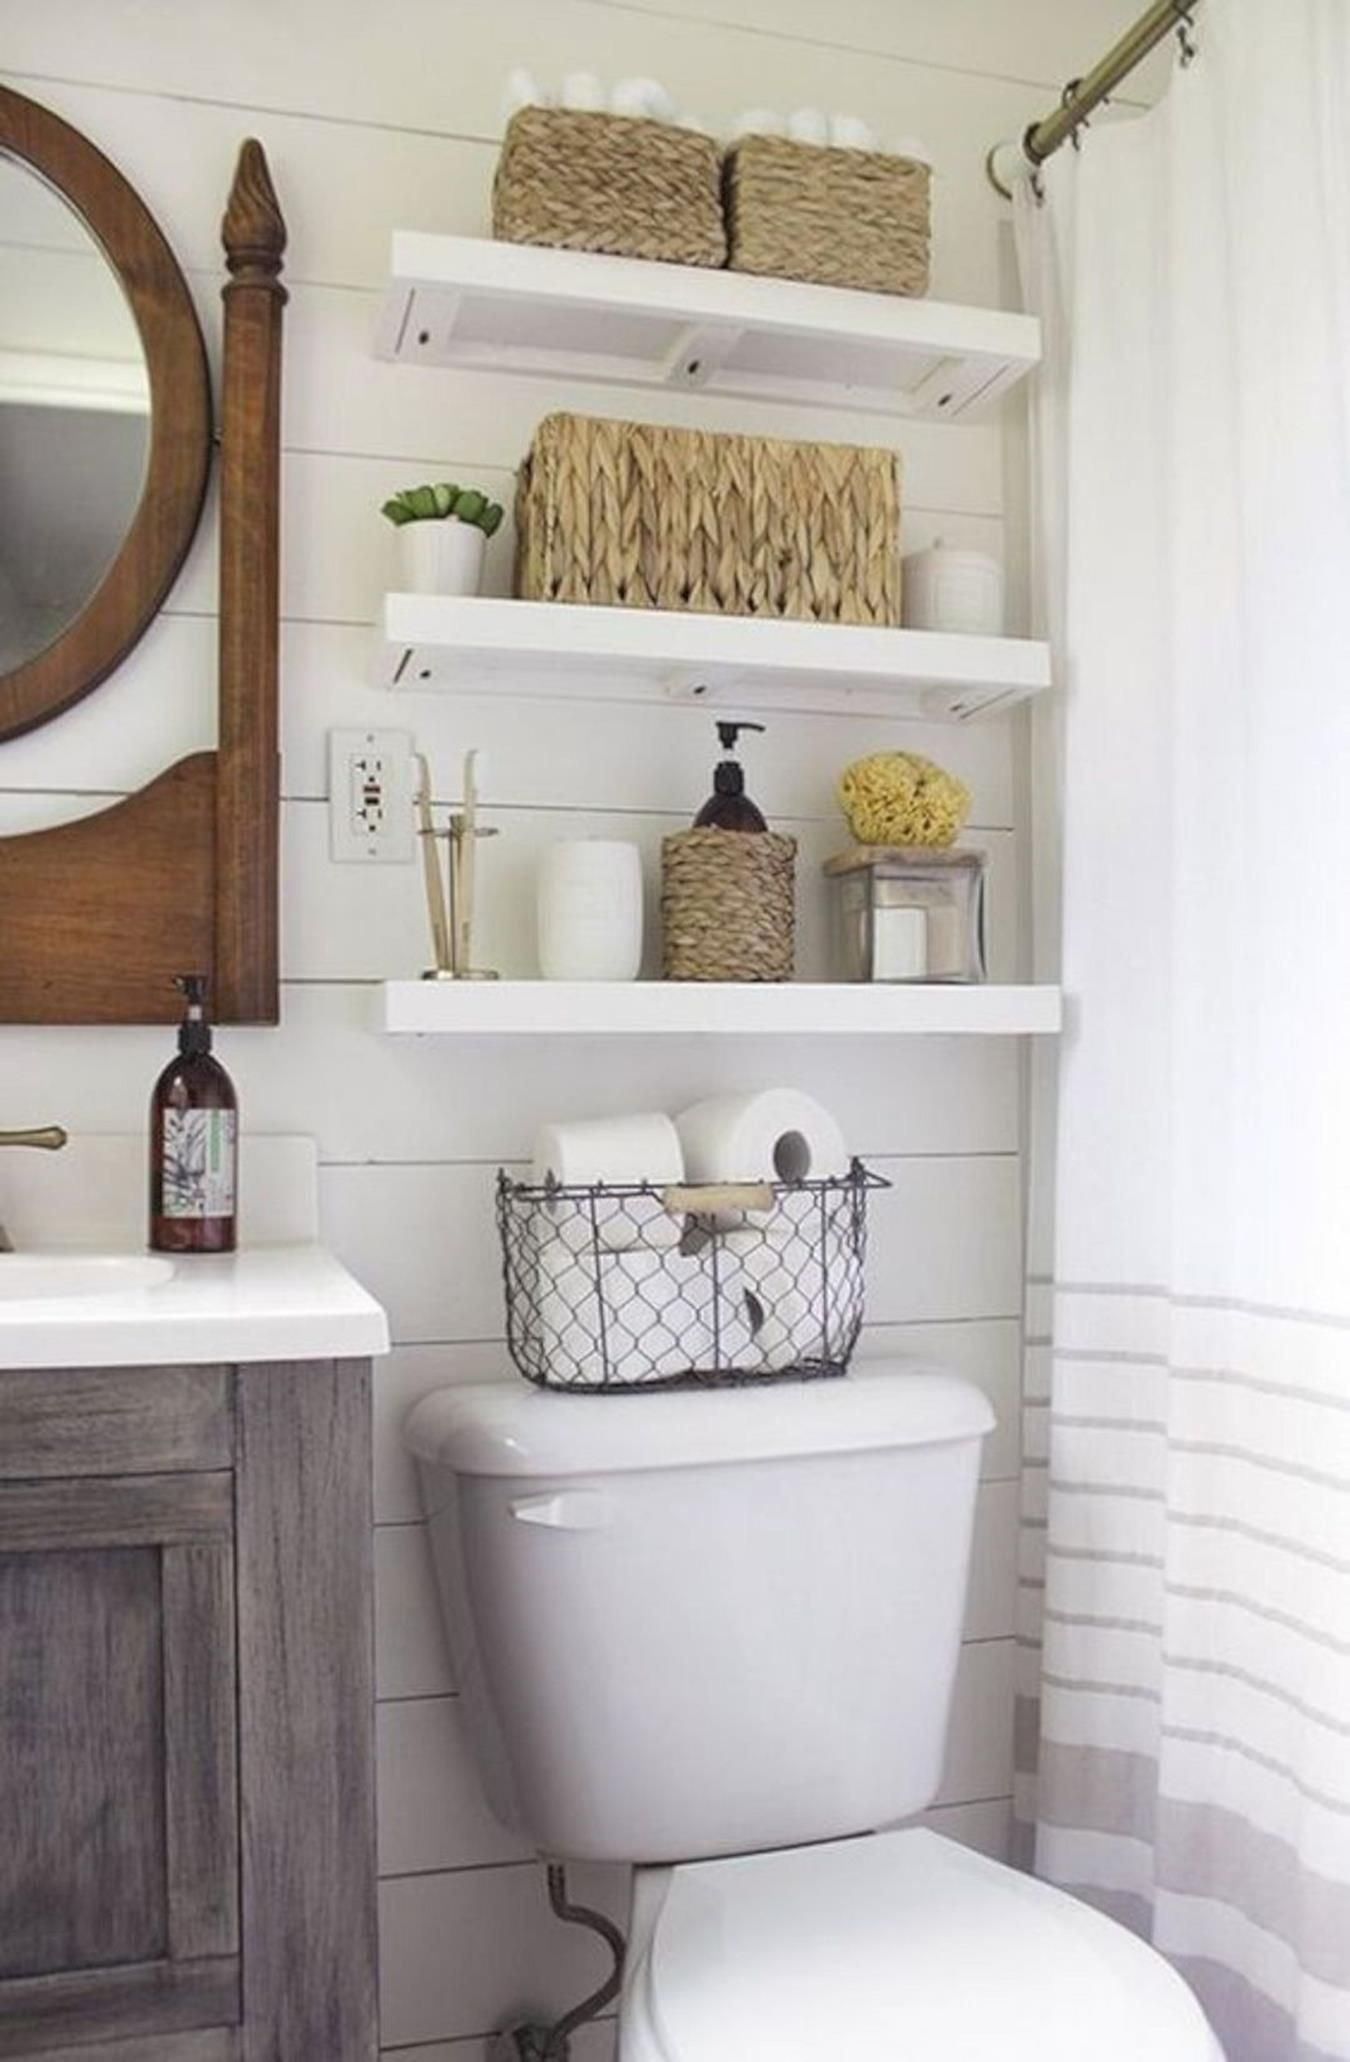 Decoration Ideas for Small Bathrooms Beautiful 42 Perfect Small Bathroom Decorating Ideas